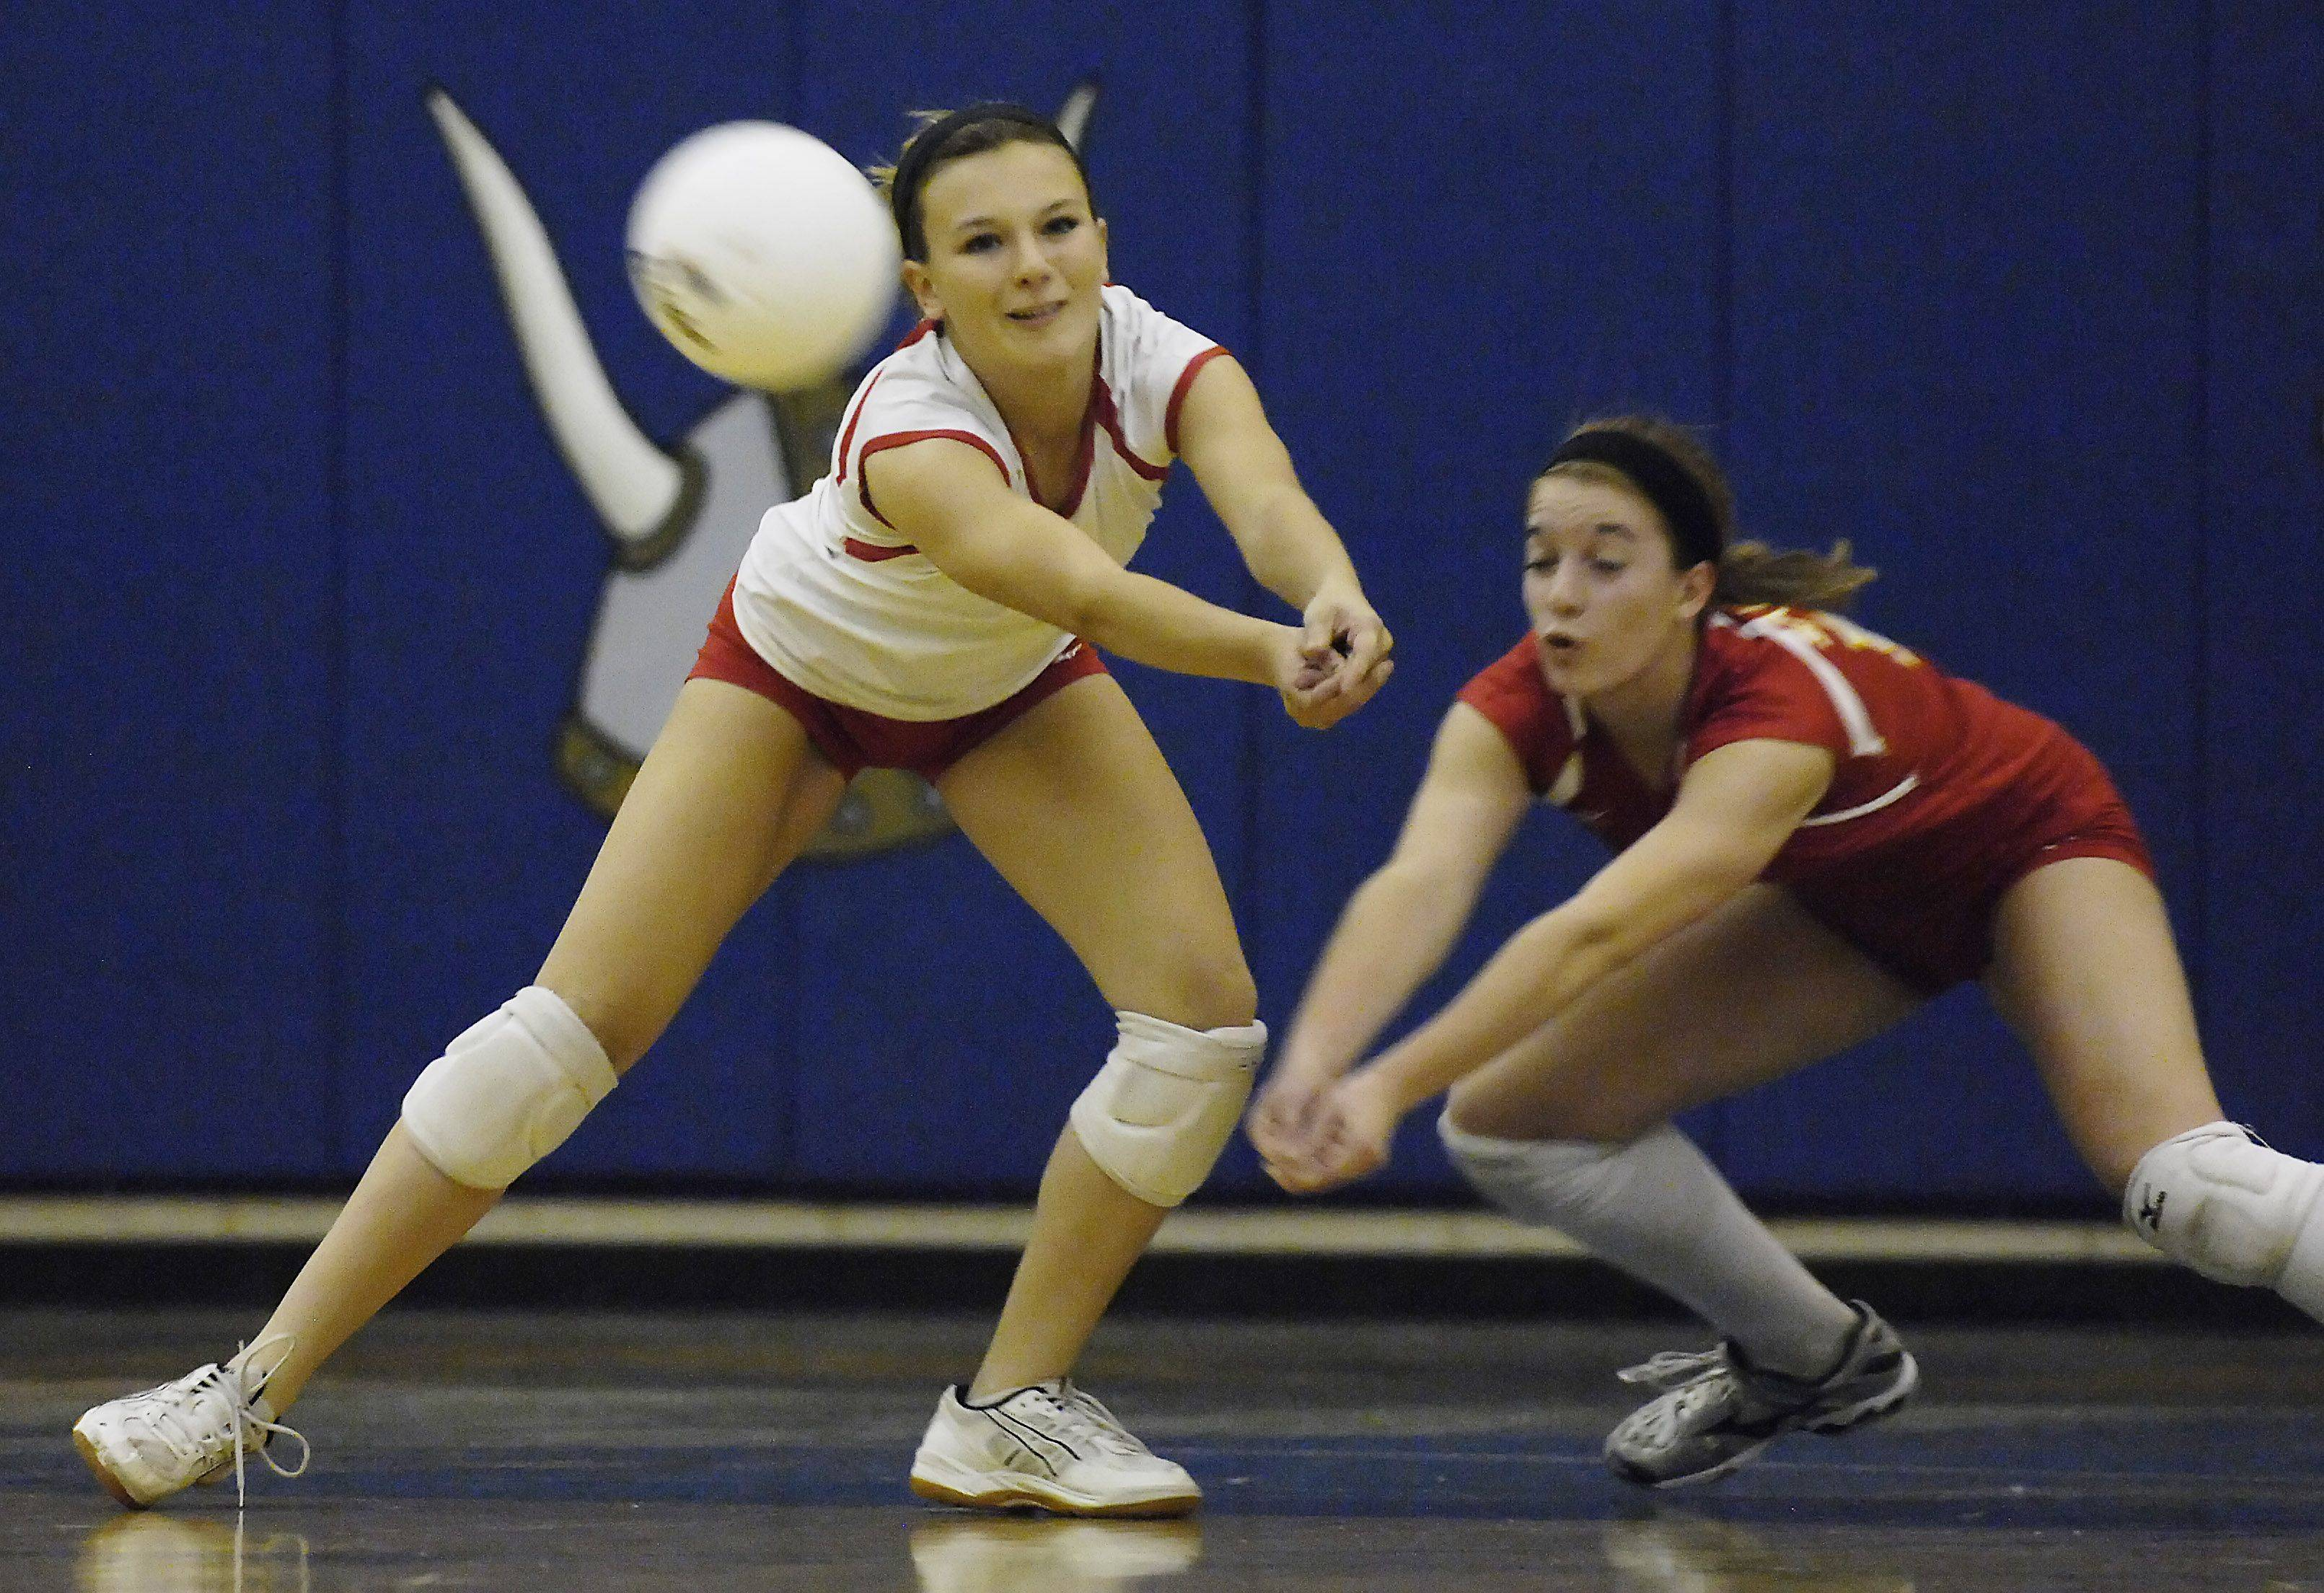 Batavia's Meghan Fabian and Stephanie Kinane, right, retrieve a Matea Valley serve Thursday night in Geneva.